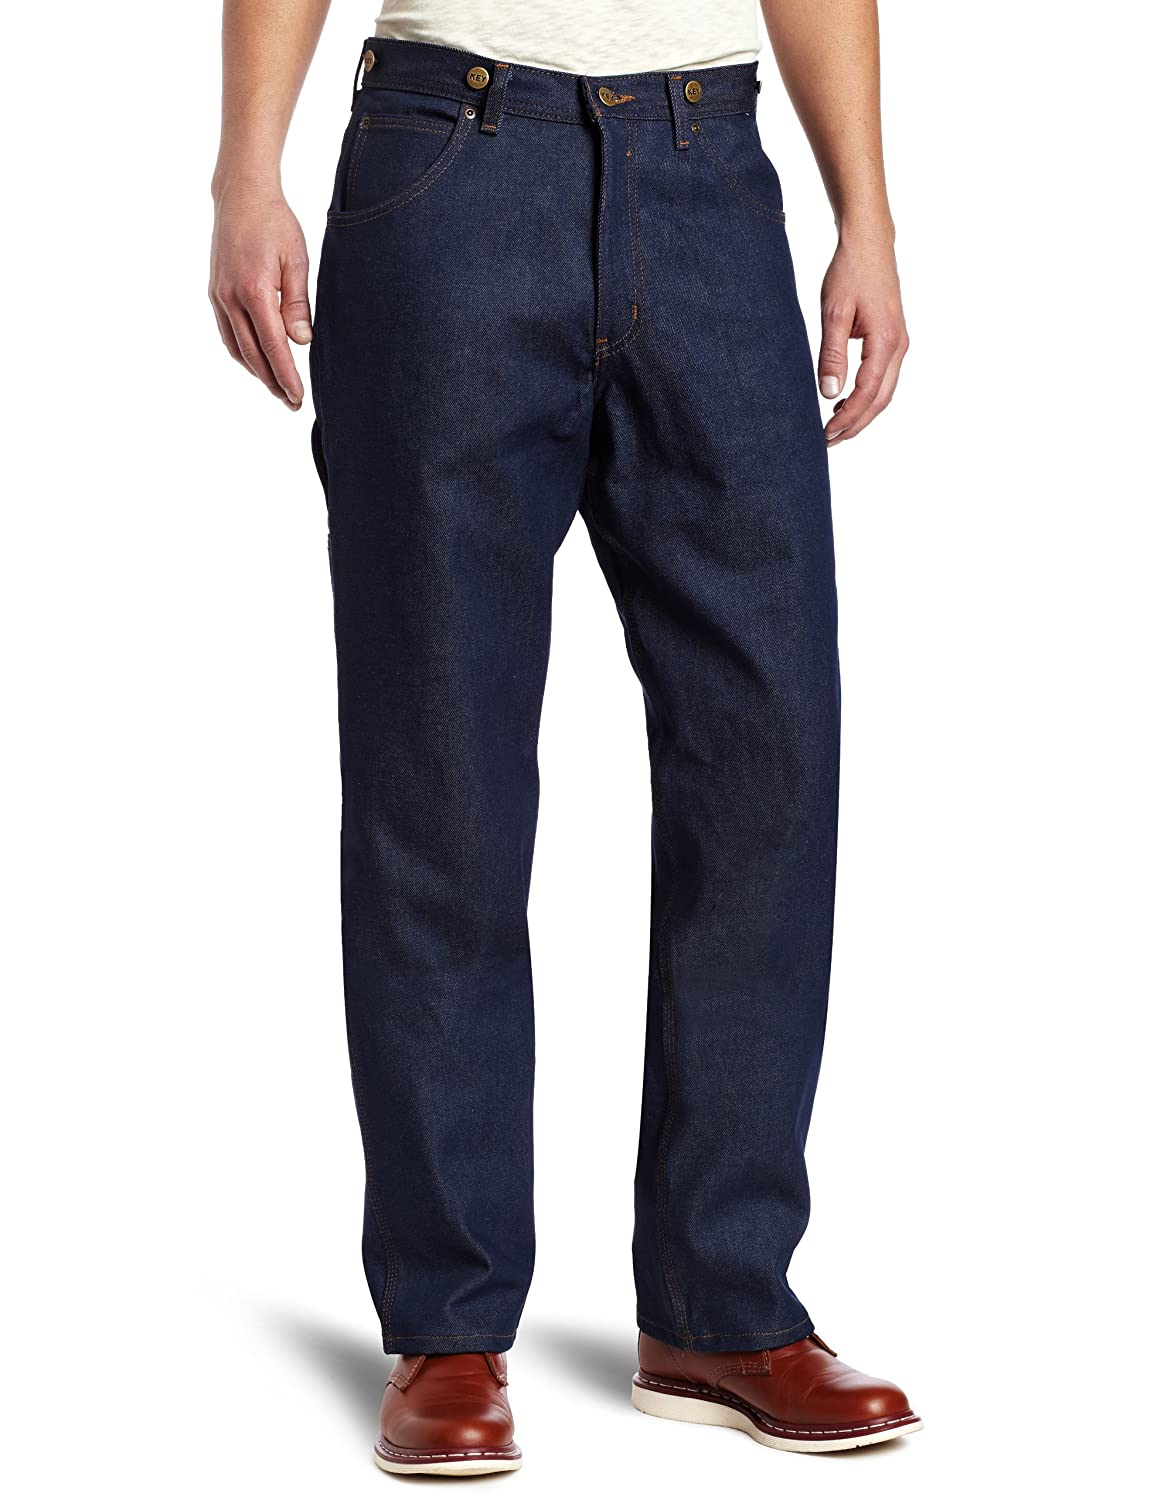 Men's Vintage Pants, Trousers, Jeans, Overalls Key Apparel Mens Indigo Denim Logger Dungaree $26.99 AT vintagedancer.com